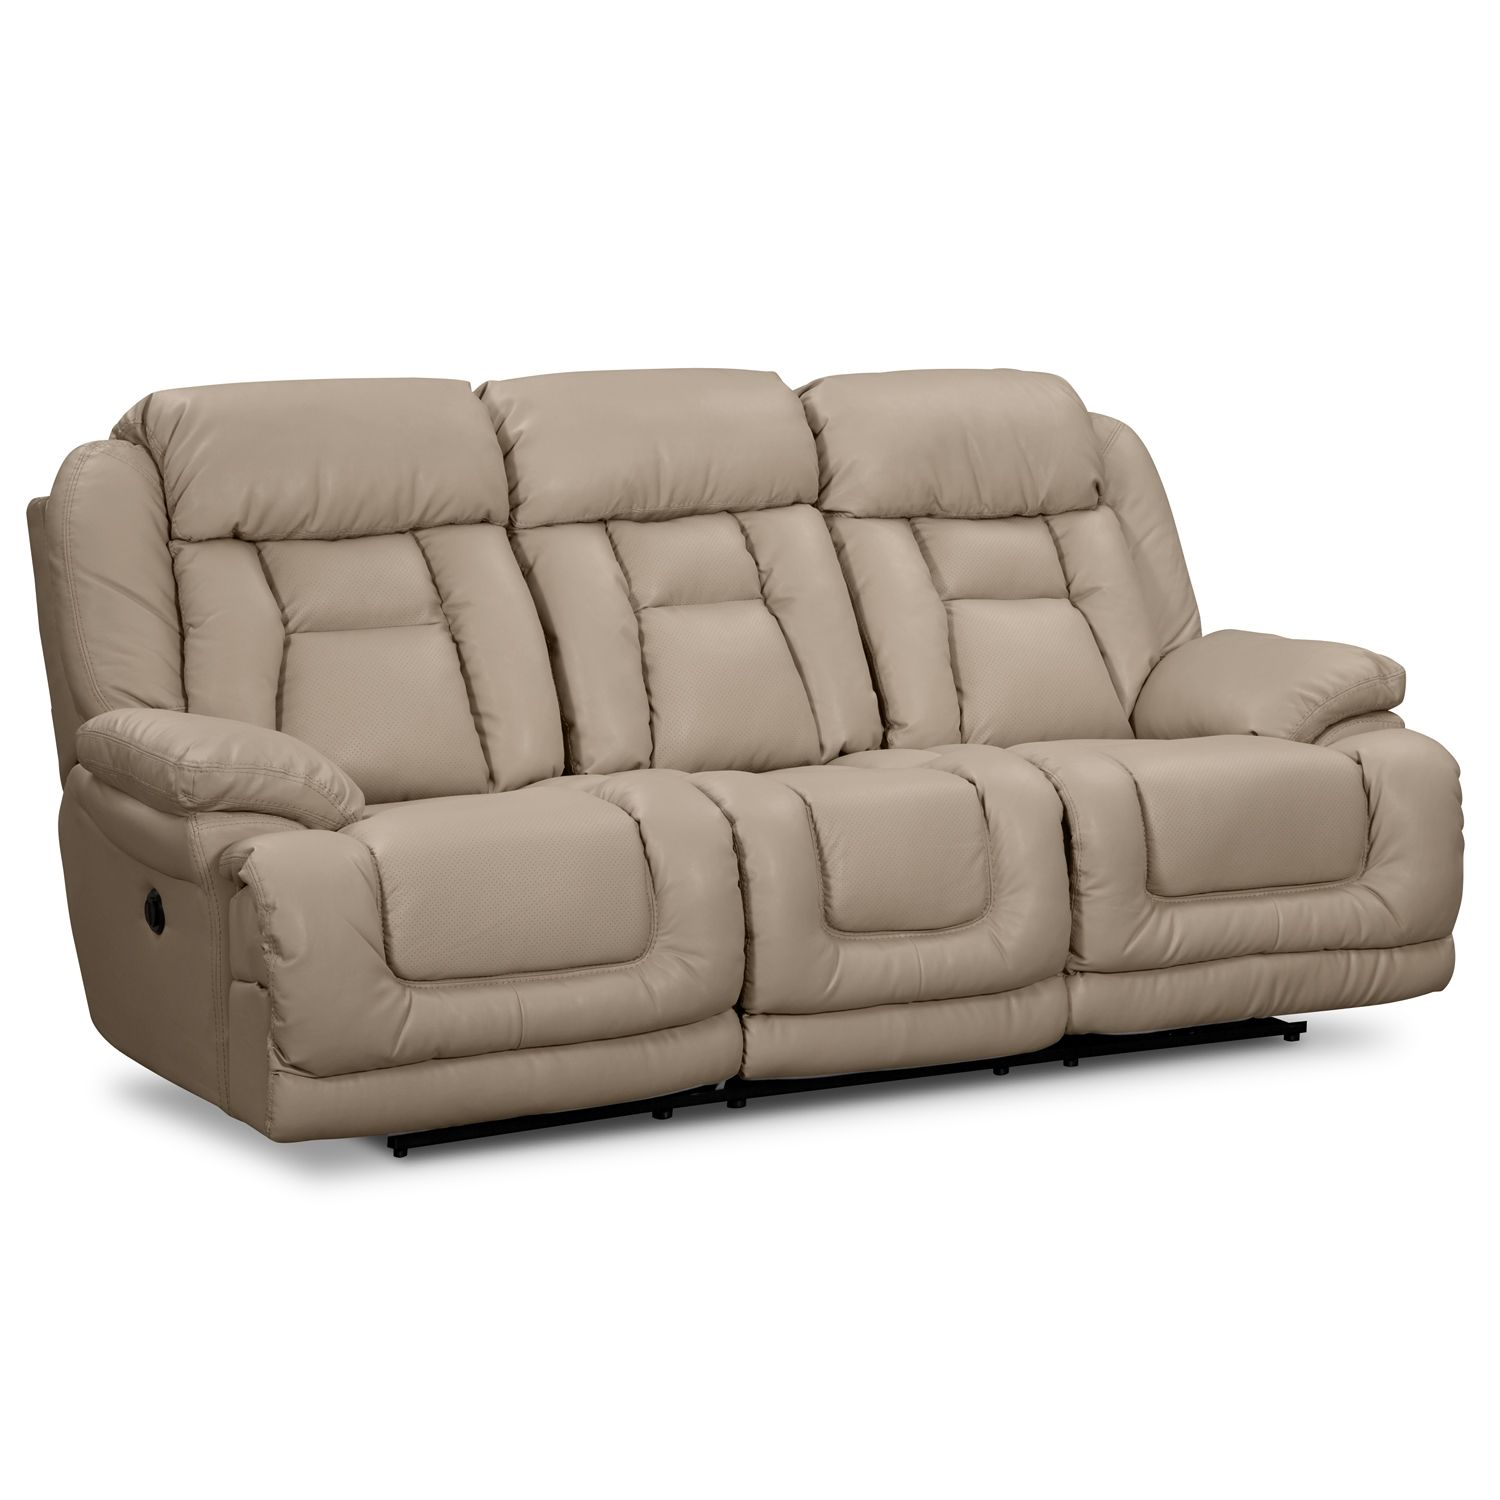 Avenger II Leather Dual Power Reclining Sofa - Value City Furniture  sc 1 st  Pinterest & Springer Wheat Leather Power Reclining Sofa | Furniture.com ... islam-shia.org